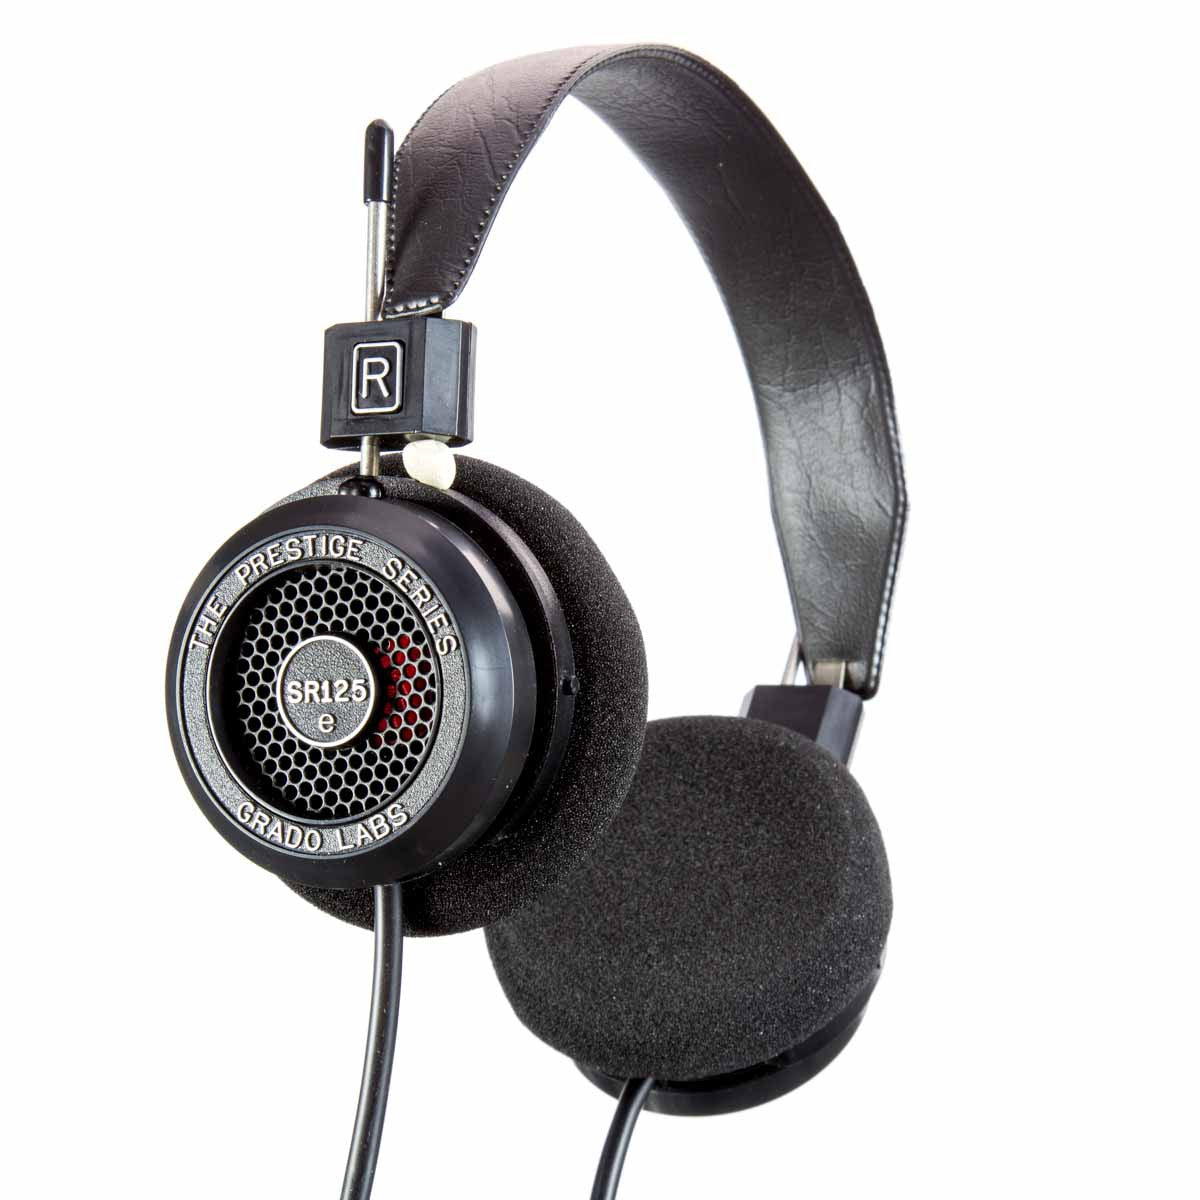 Grado SR 125e - headphone.com - 1